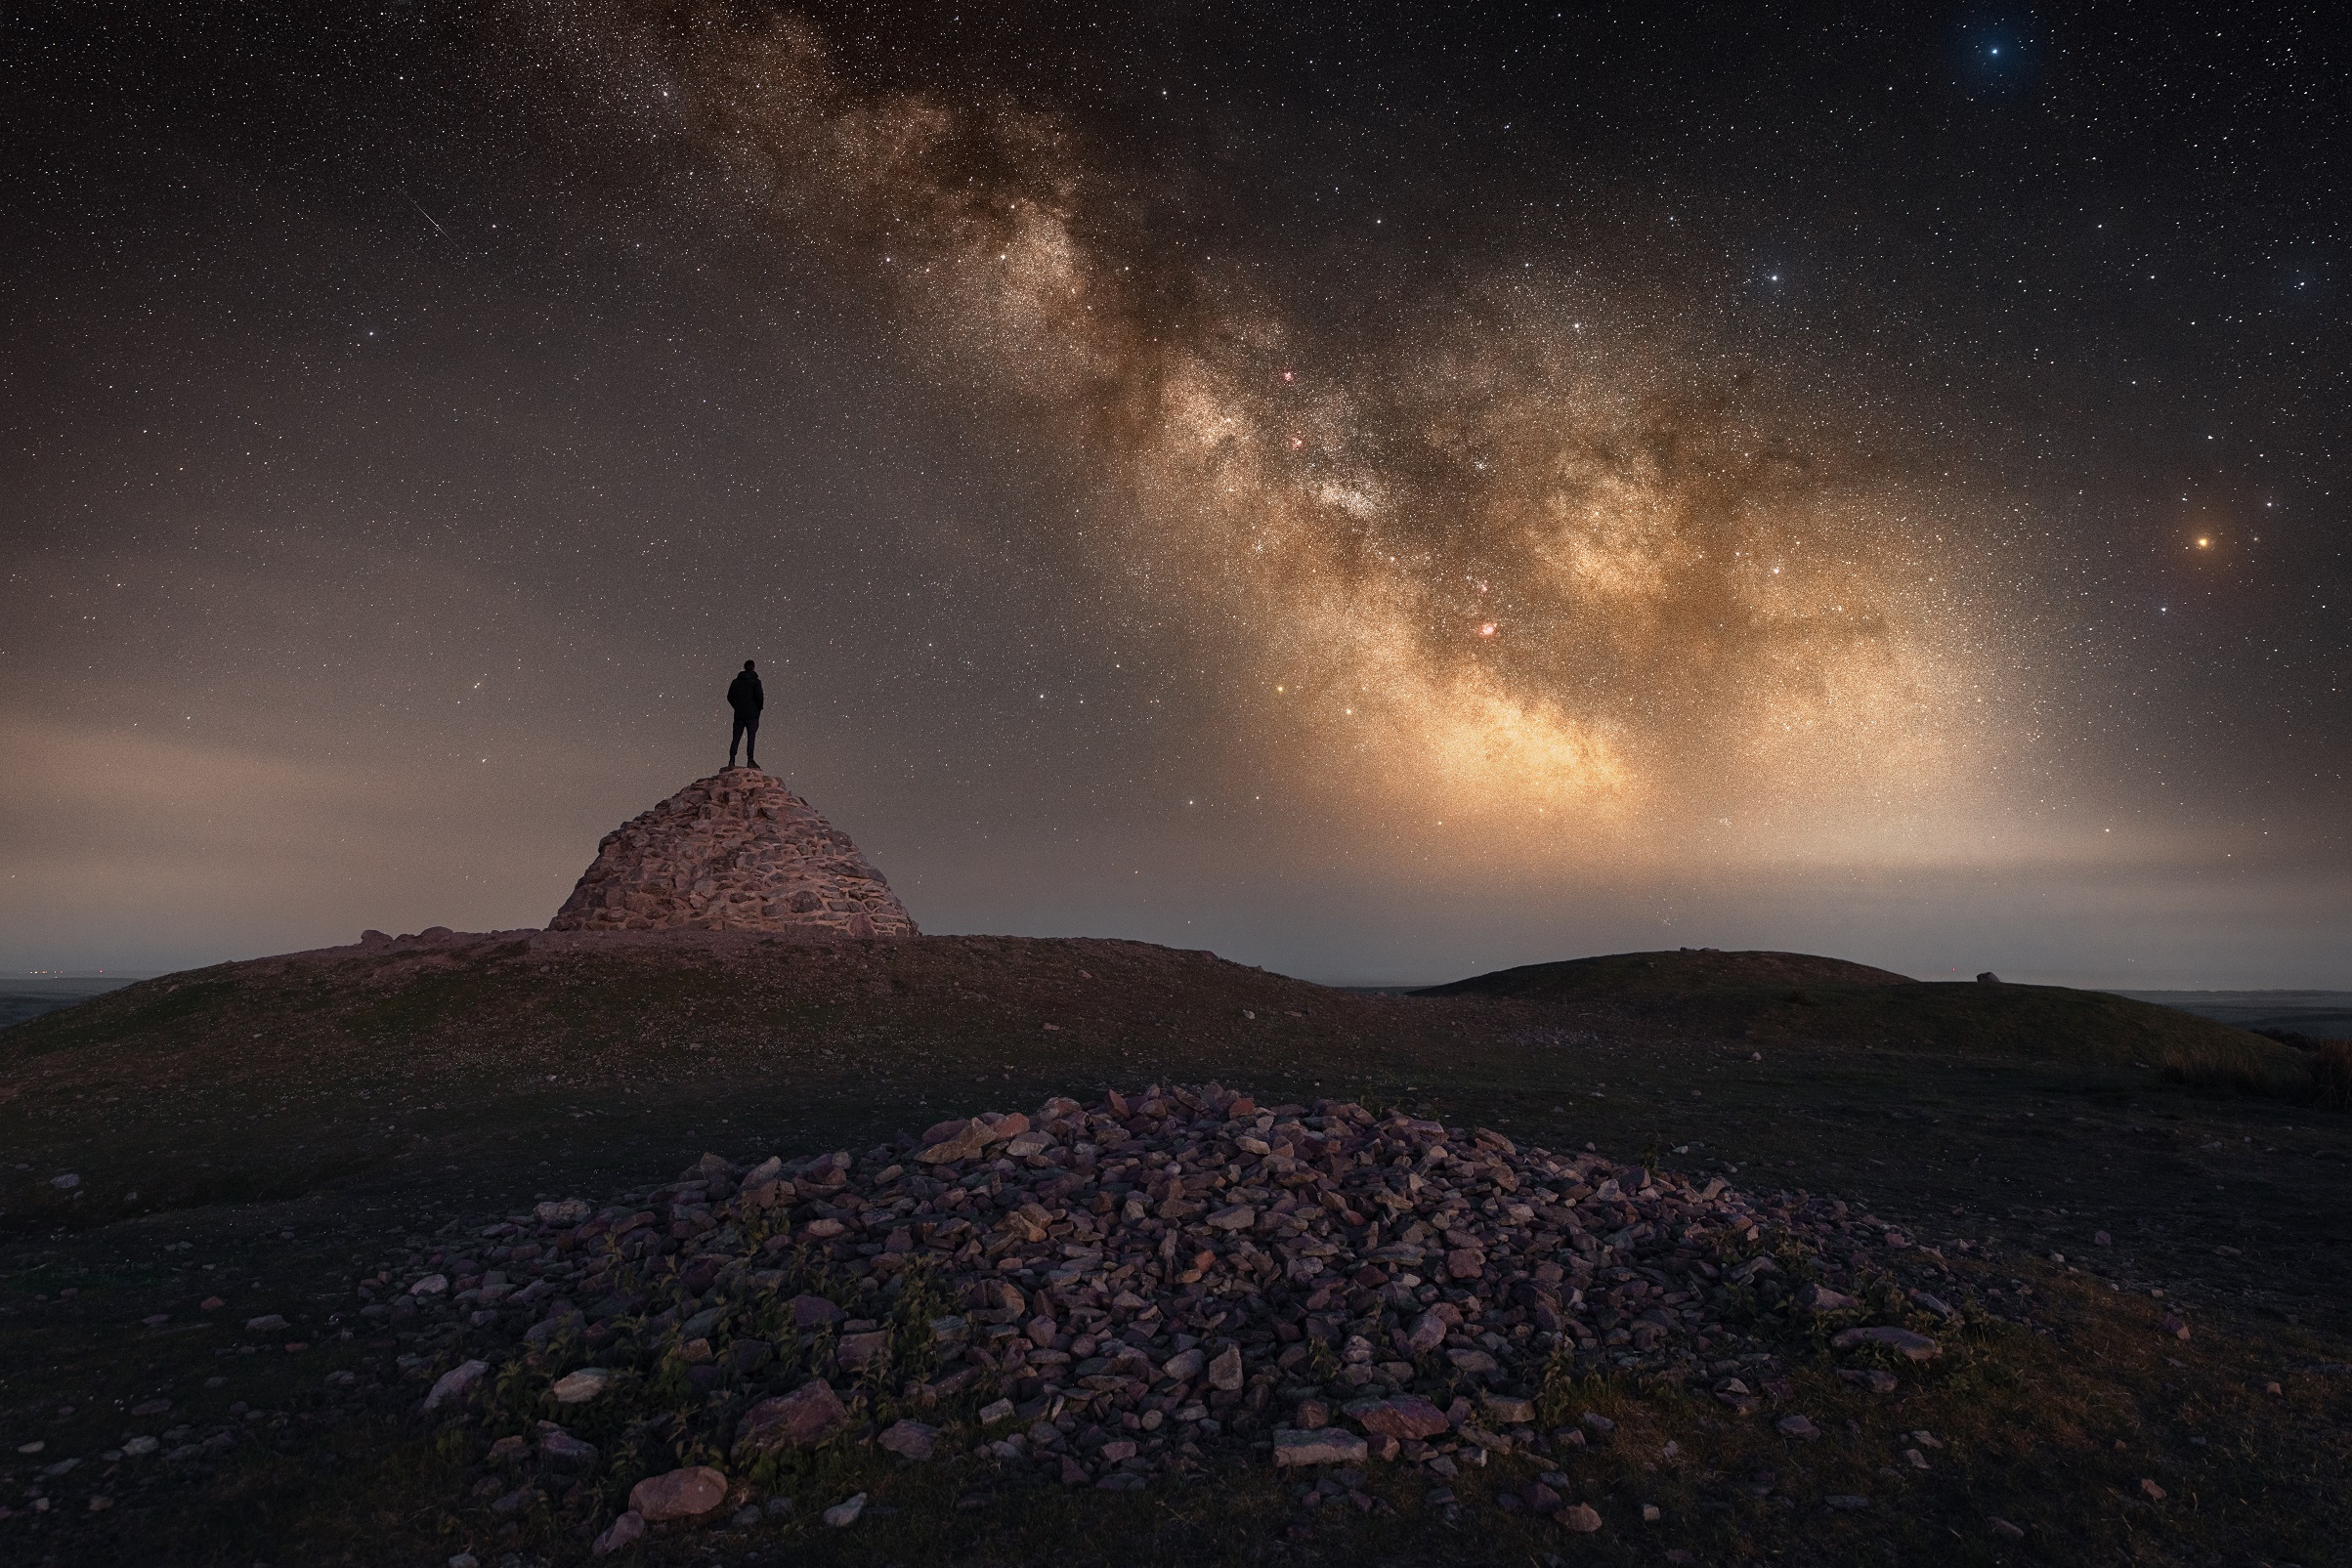 Laurence-Liddy-Under-The-Stars-At-Dunkery-Beacon-Exmoor_med-res.jpg